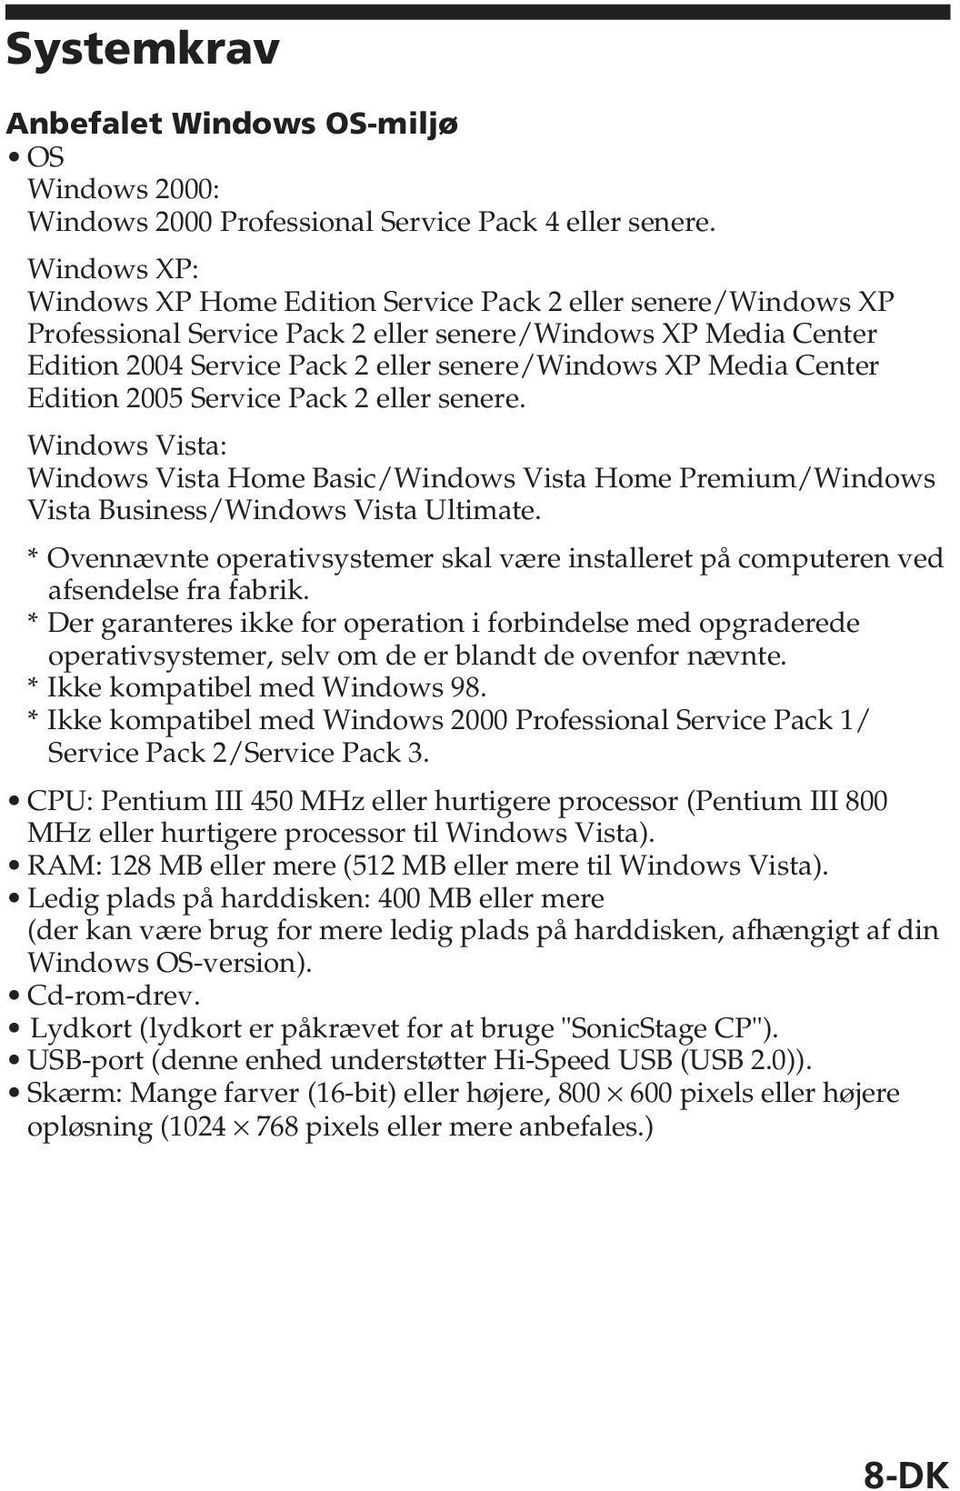 Center Edition 2005 Service Pack 2 eller senere. Windows Vista: Windows Vista Home Basic/Windows Vista Home Premium/Windows Vista Business/Windows Vista Ultimate.